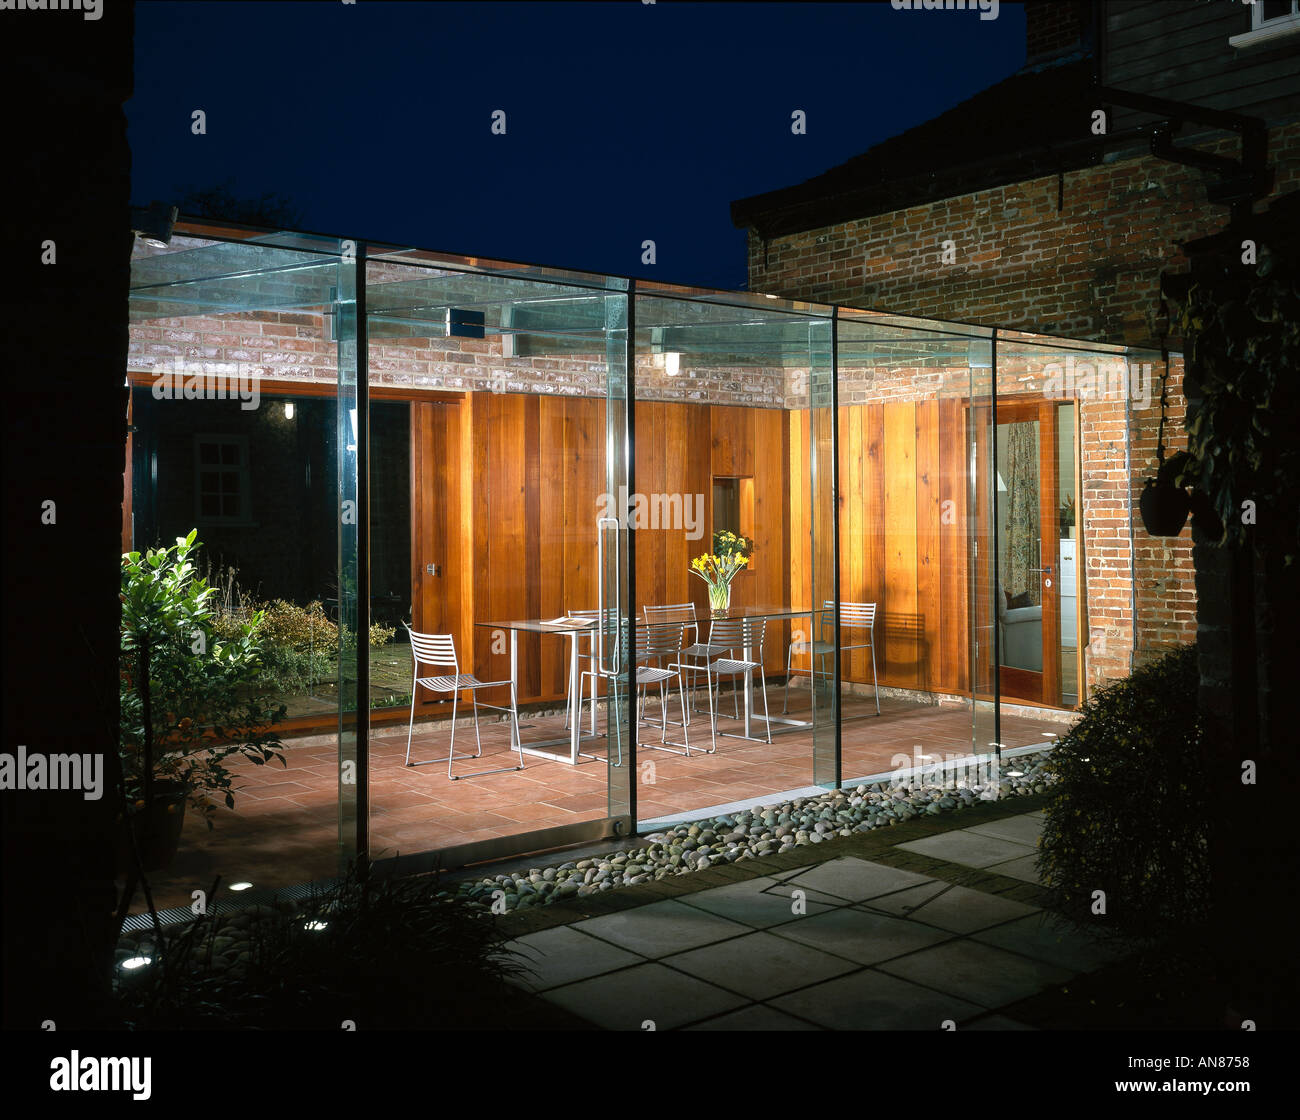 Plovers Hill House, Norfolk, 2000 - Glass extension. Architect: DSDHA - Stock Image